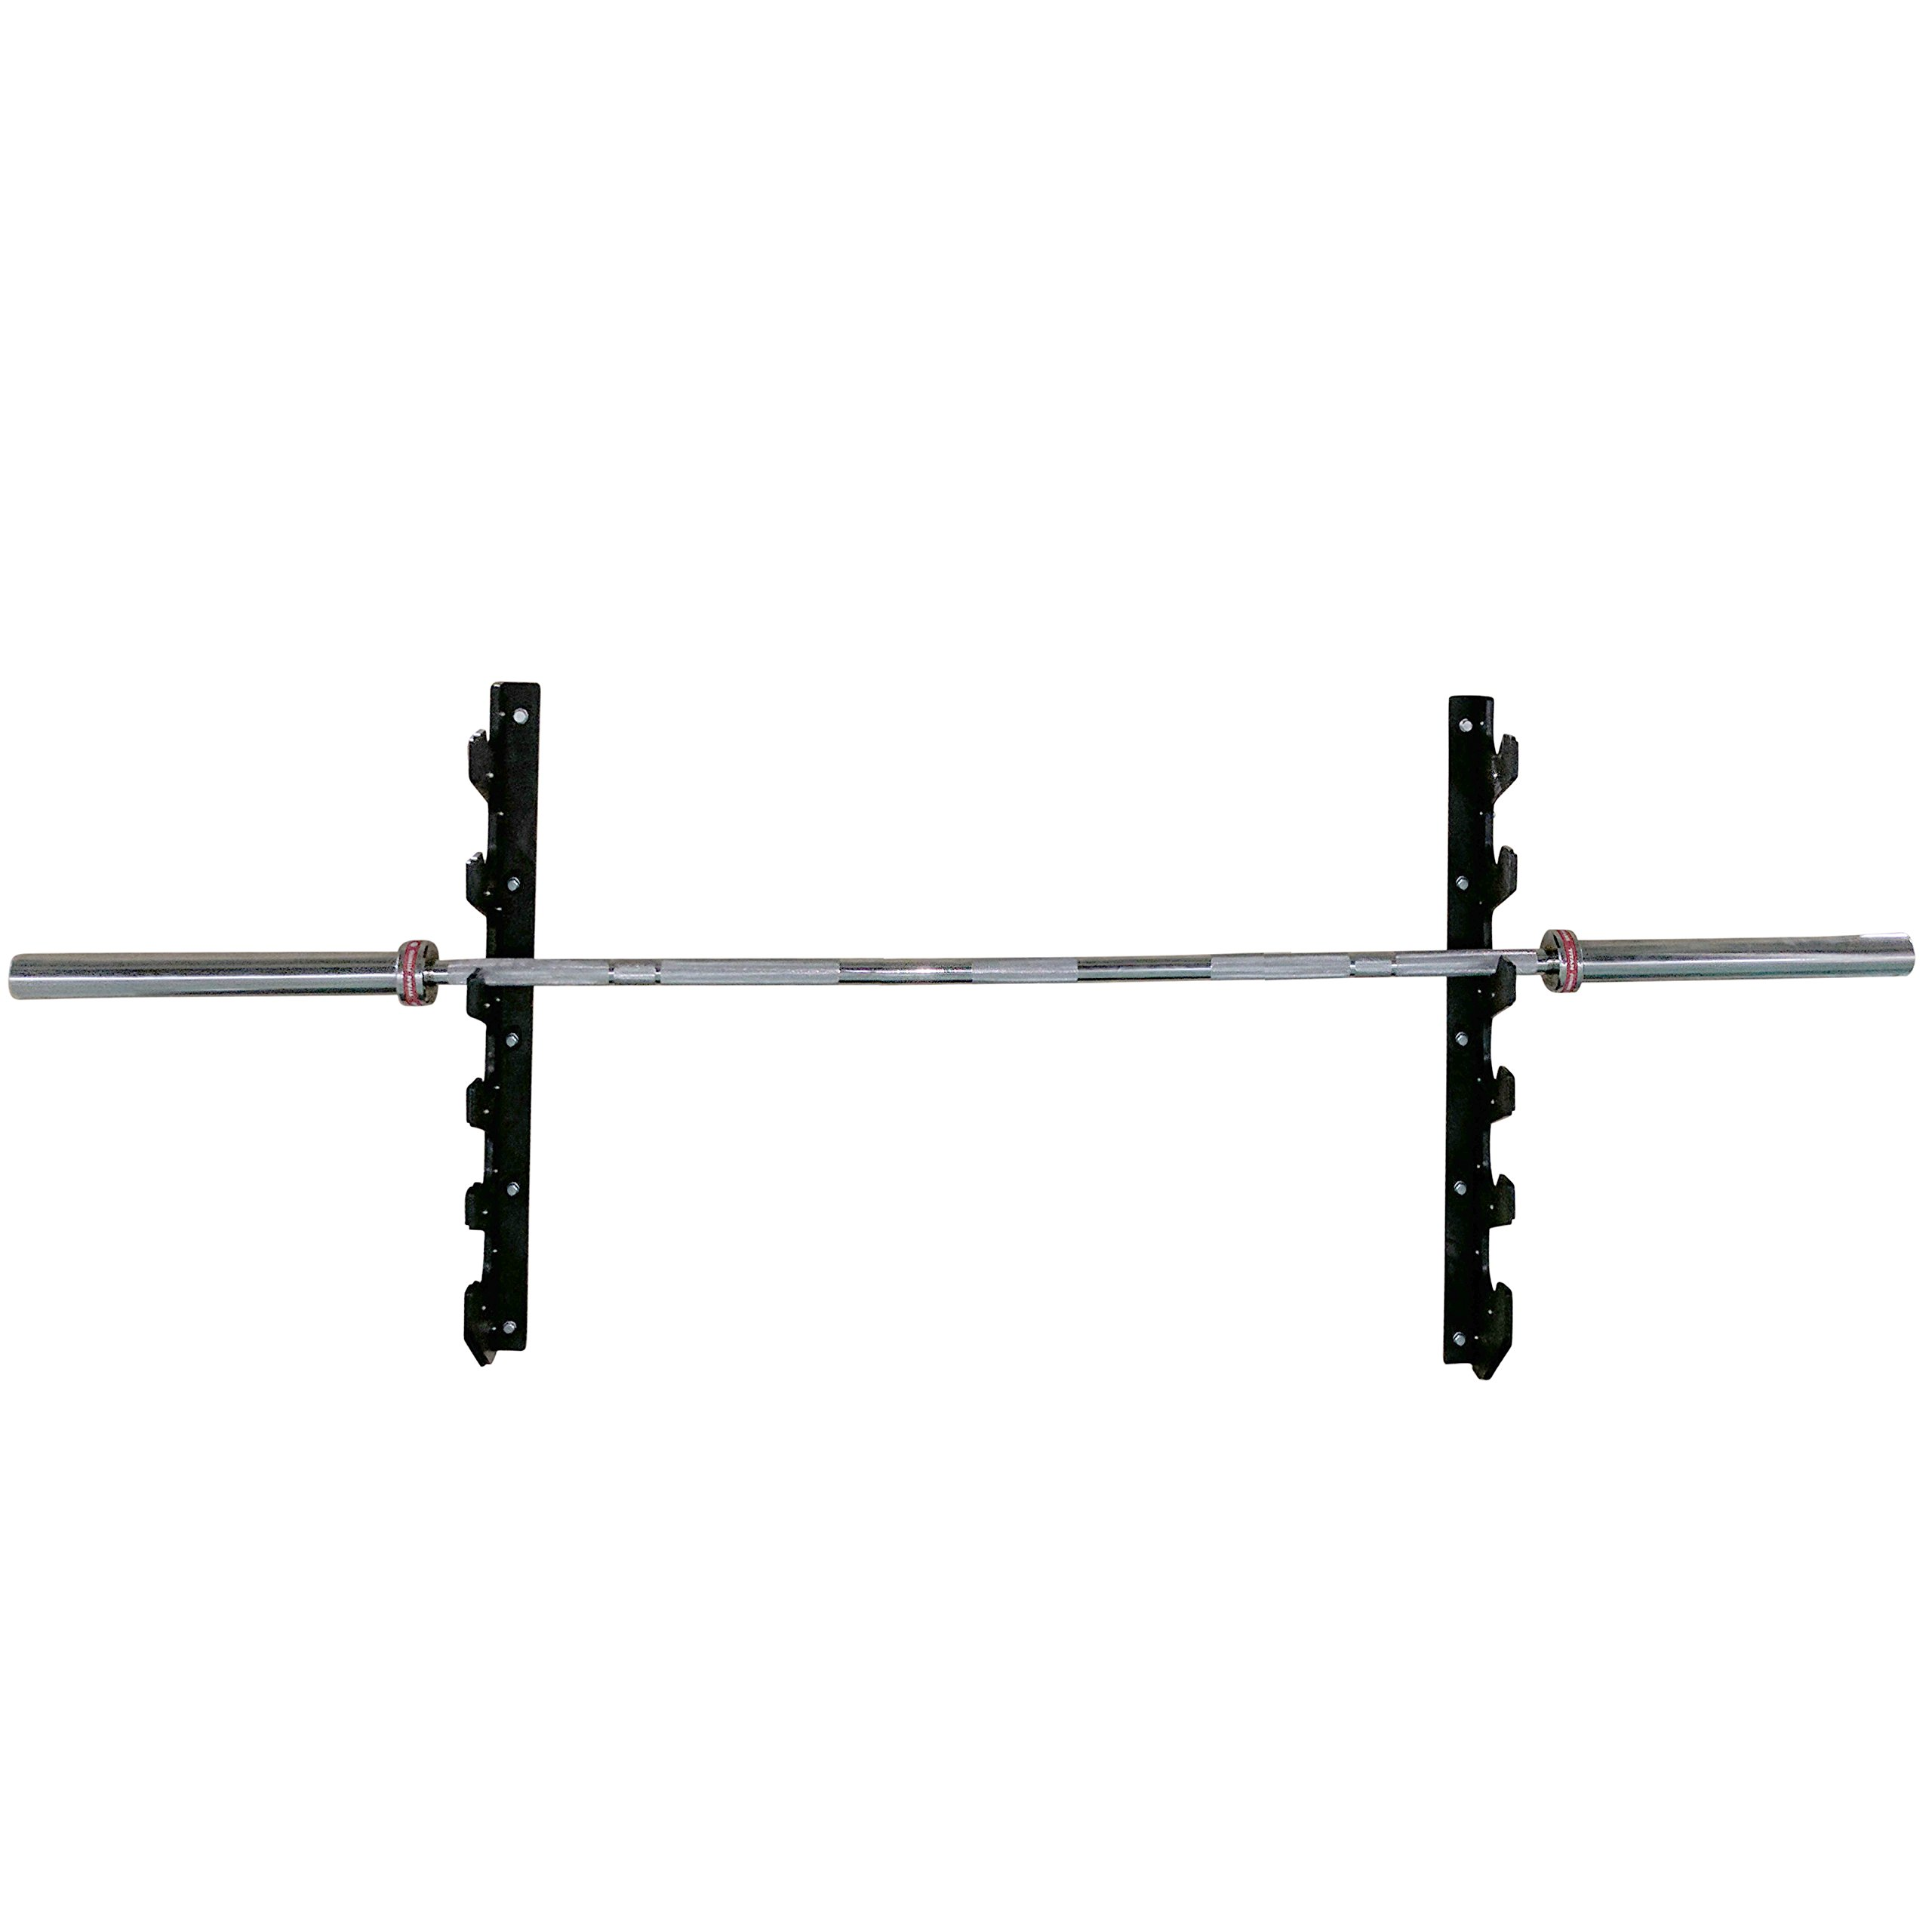 Titan Horizontal Wall Mounted 6 Olympic Barbell Rack by Titan Fitness